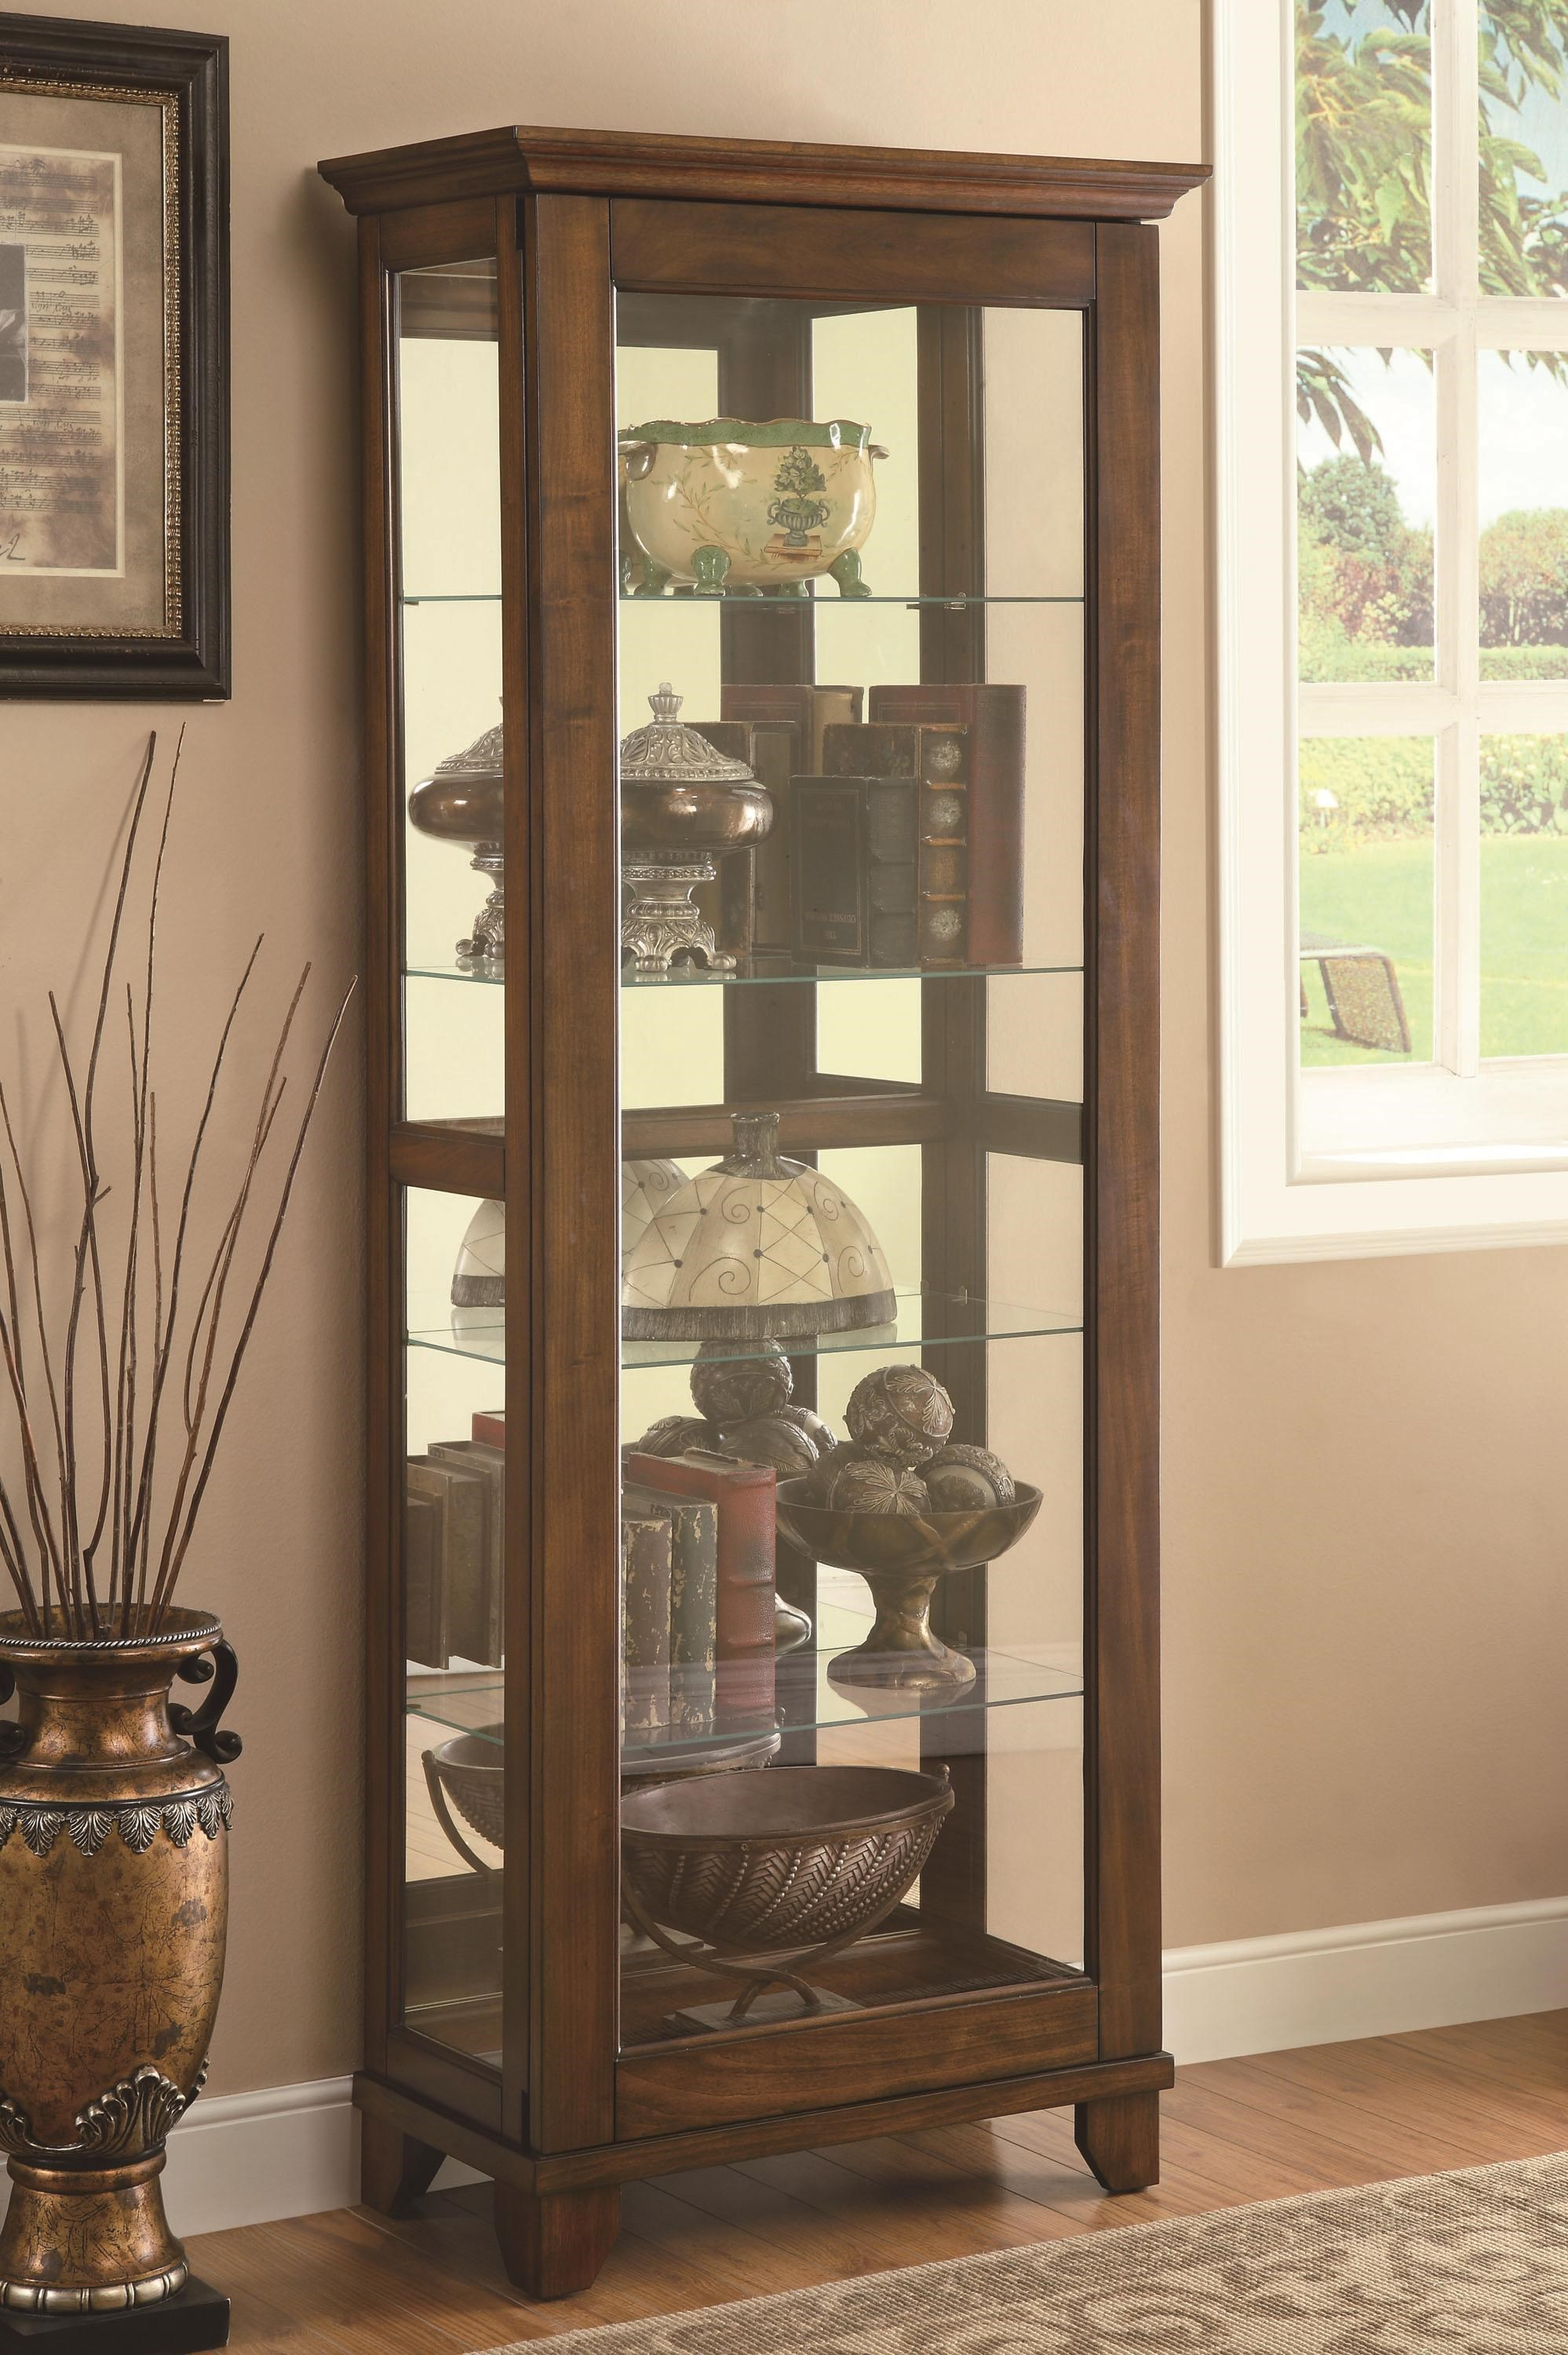 Coaster Curio Cabinets 5 Shelf Curio Cabinet With Warm Brown Finish U0026  Mirrored Back